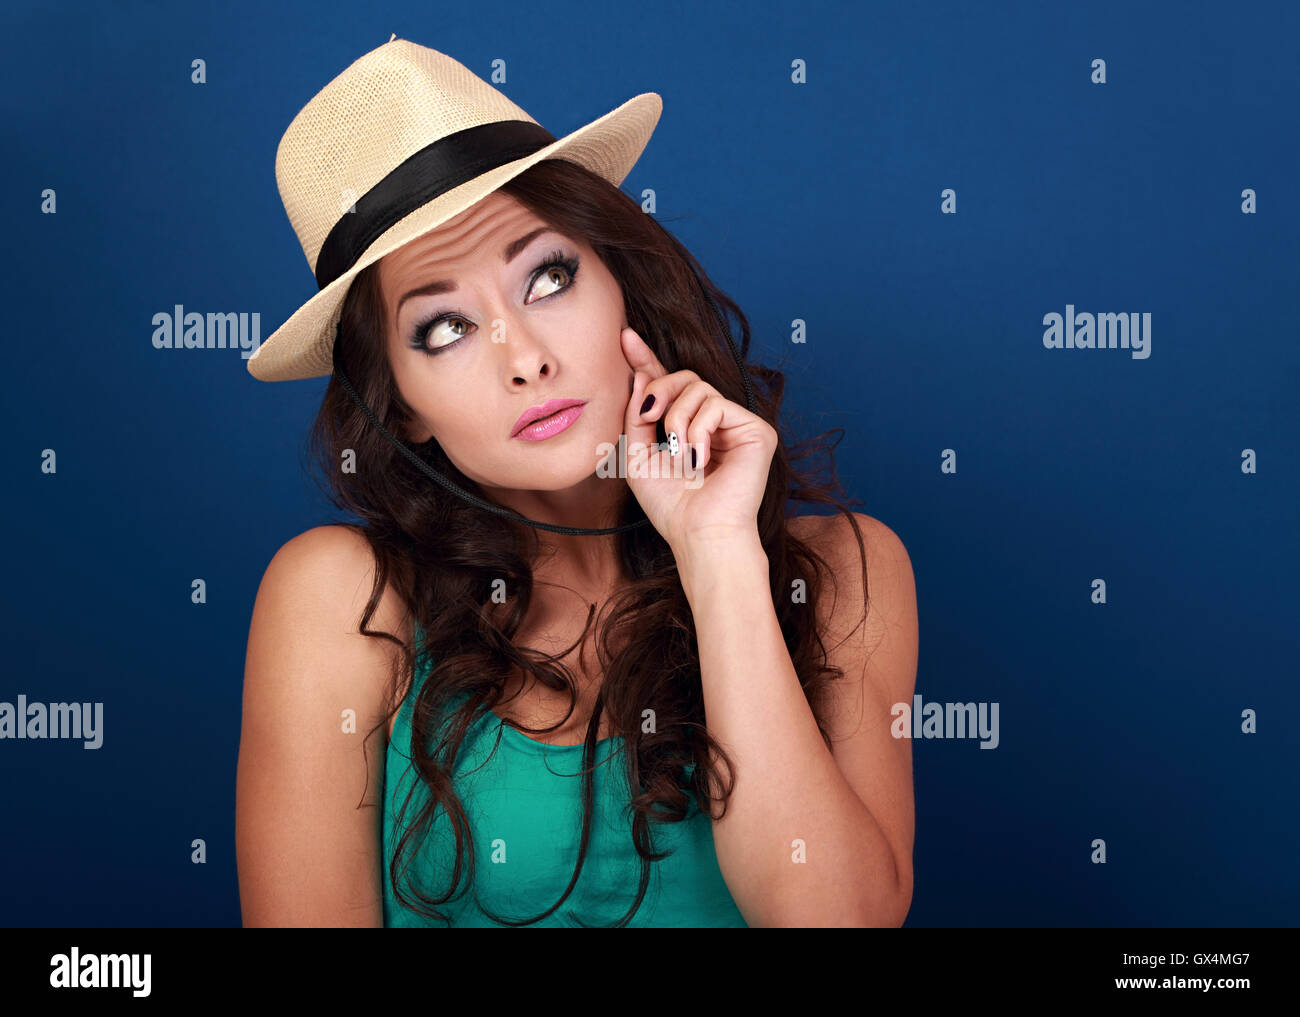 Fun grimacing frightened woman in hat thinking and looking up on empty space background. Curly brown long hair style. - Stock Image